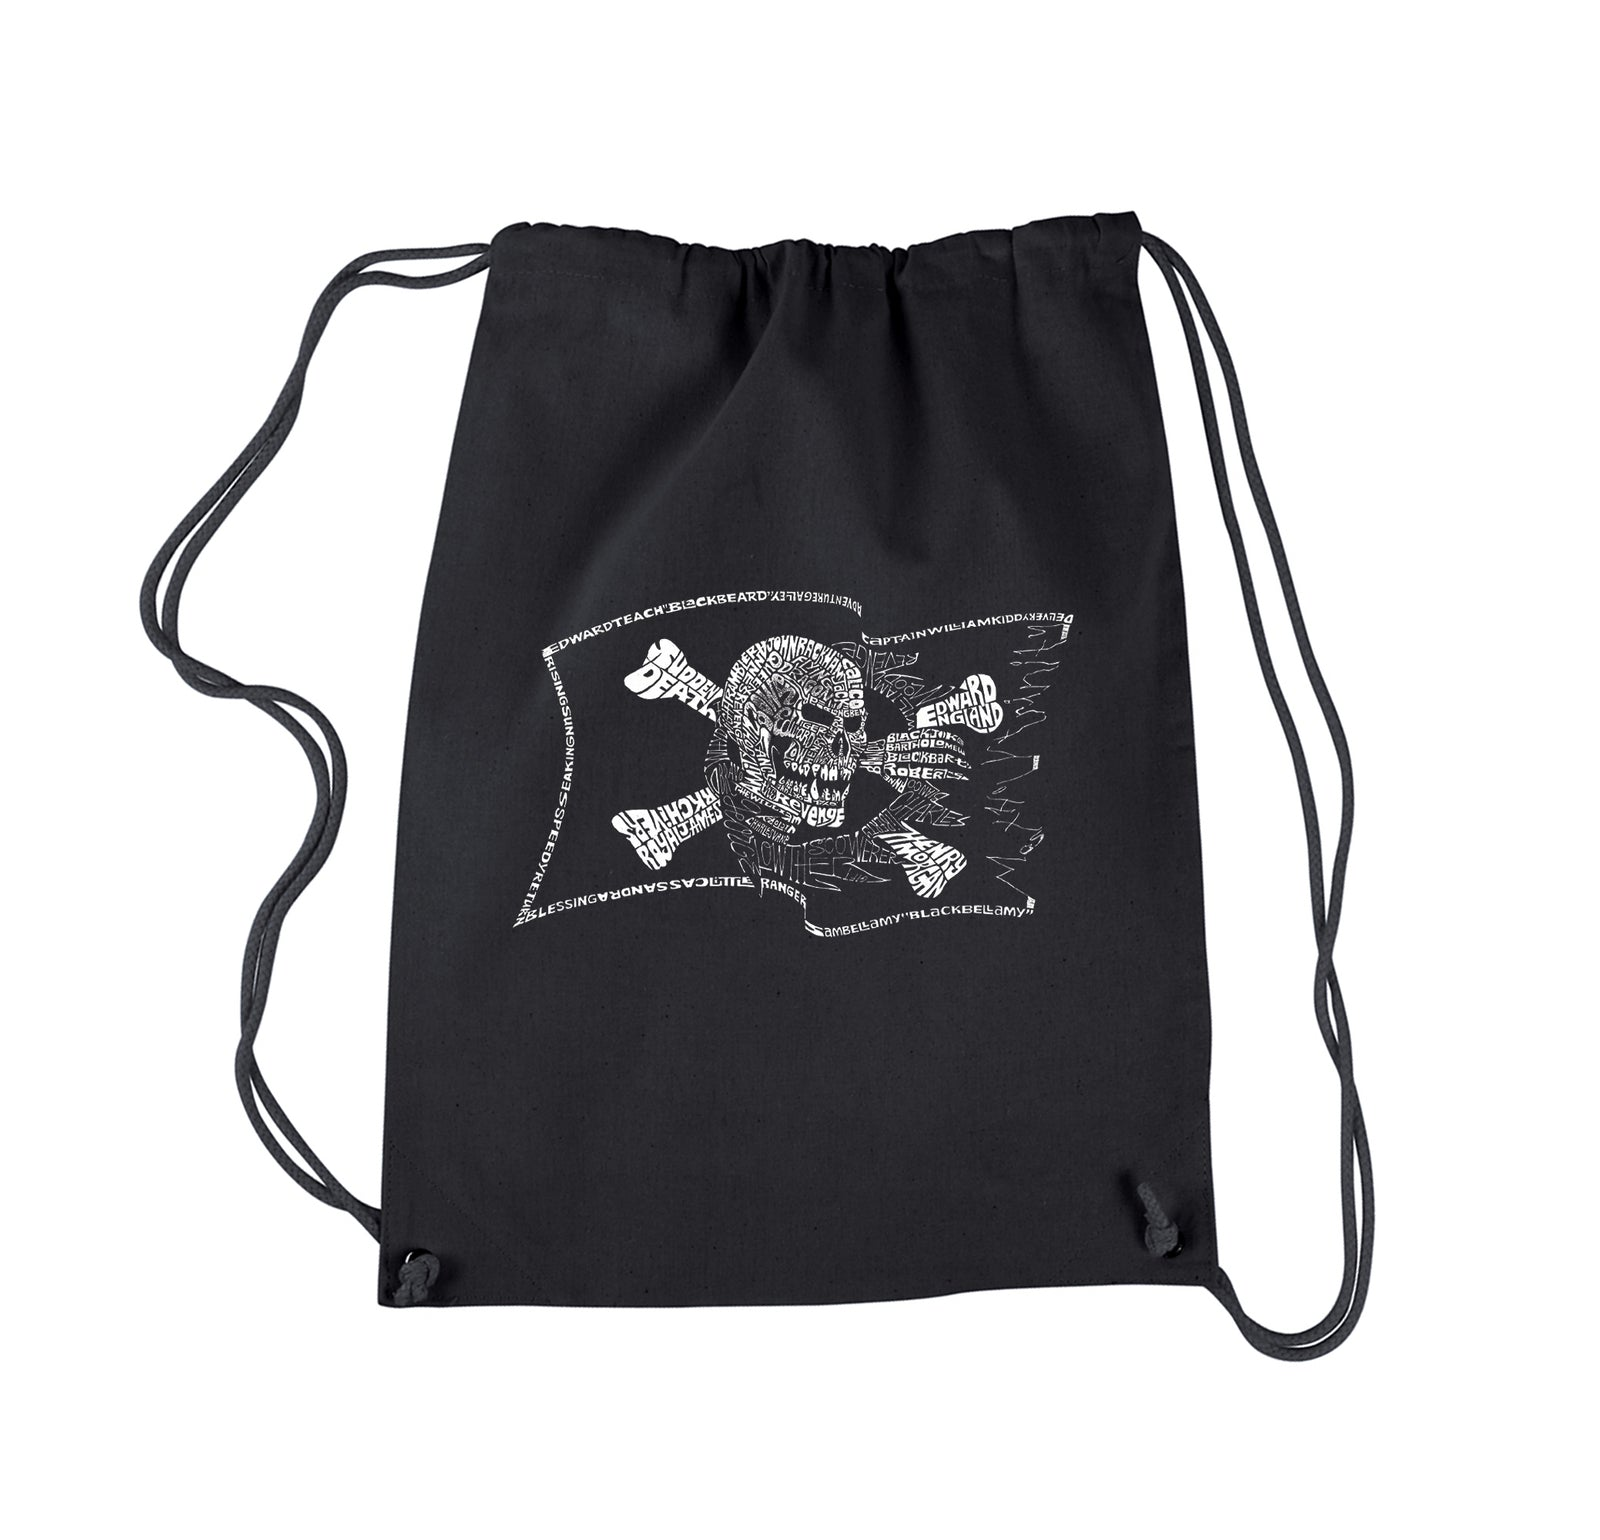 Drawstring Backpack - FAMOUS PIRATE CAPTAINS AND SHIPS